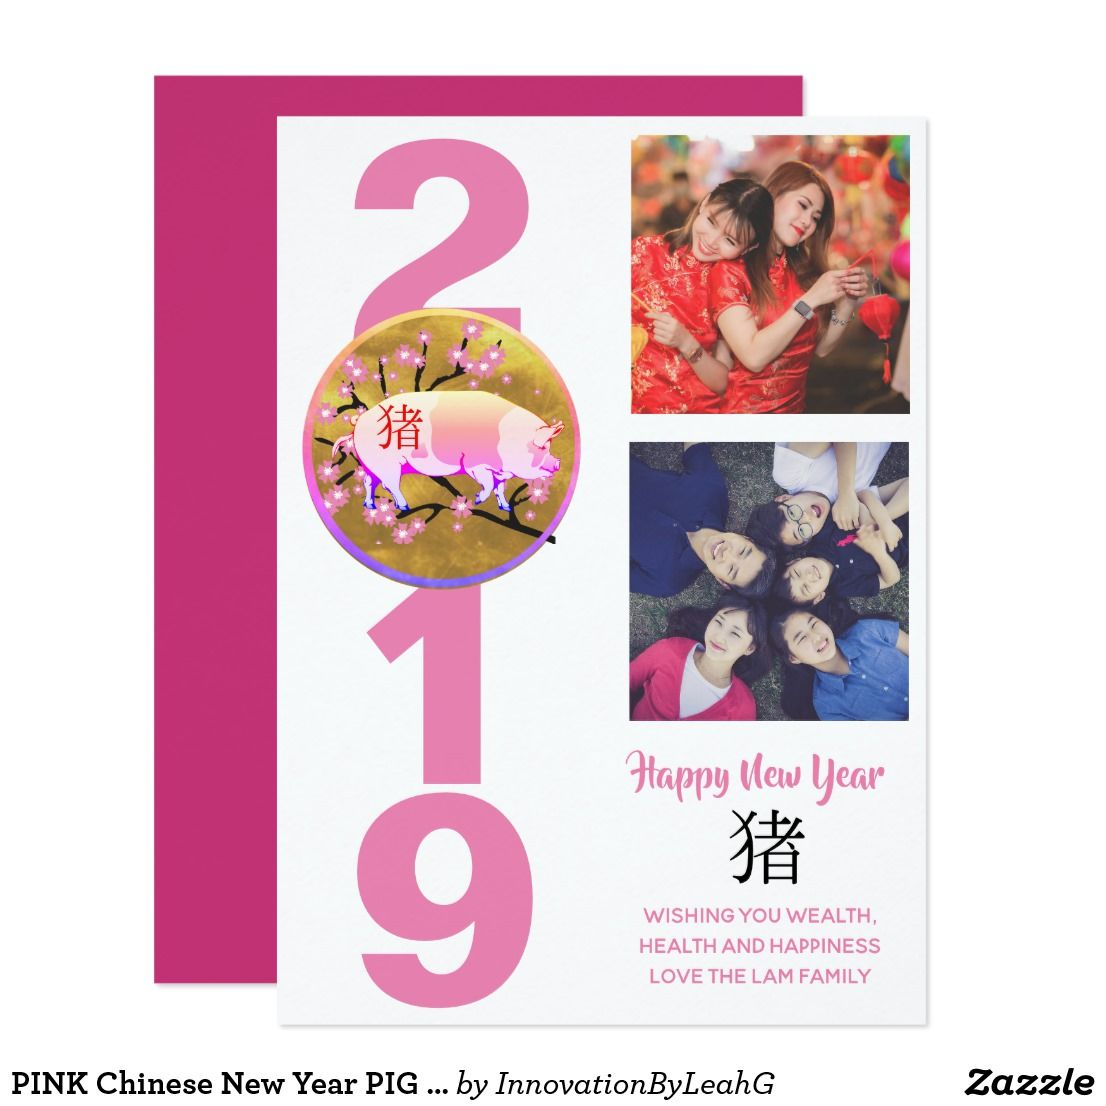 Pink Chinese New Year Pig 2019 Photo Collage Holiday Card Cny